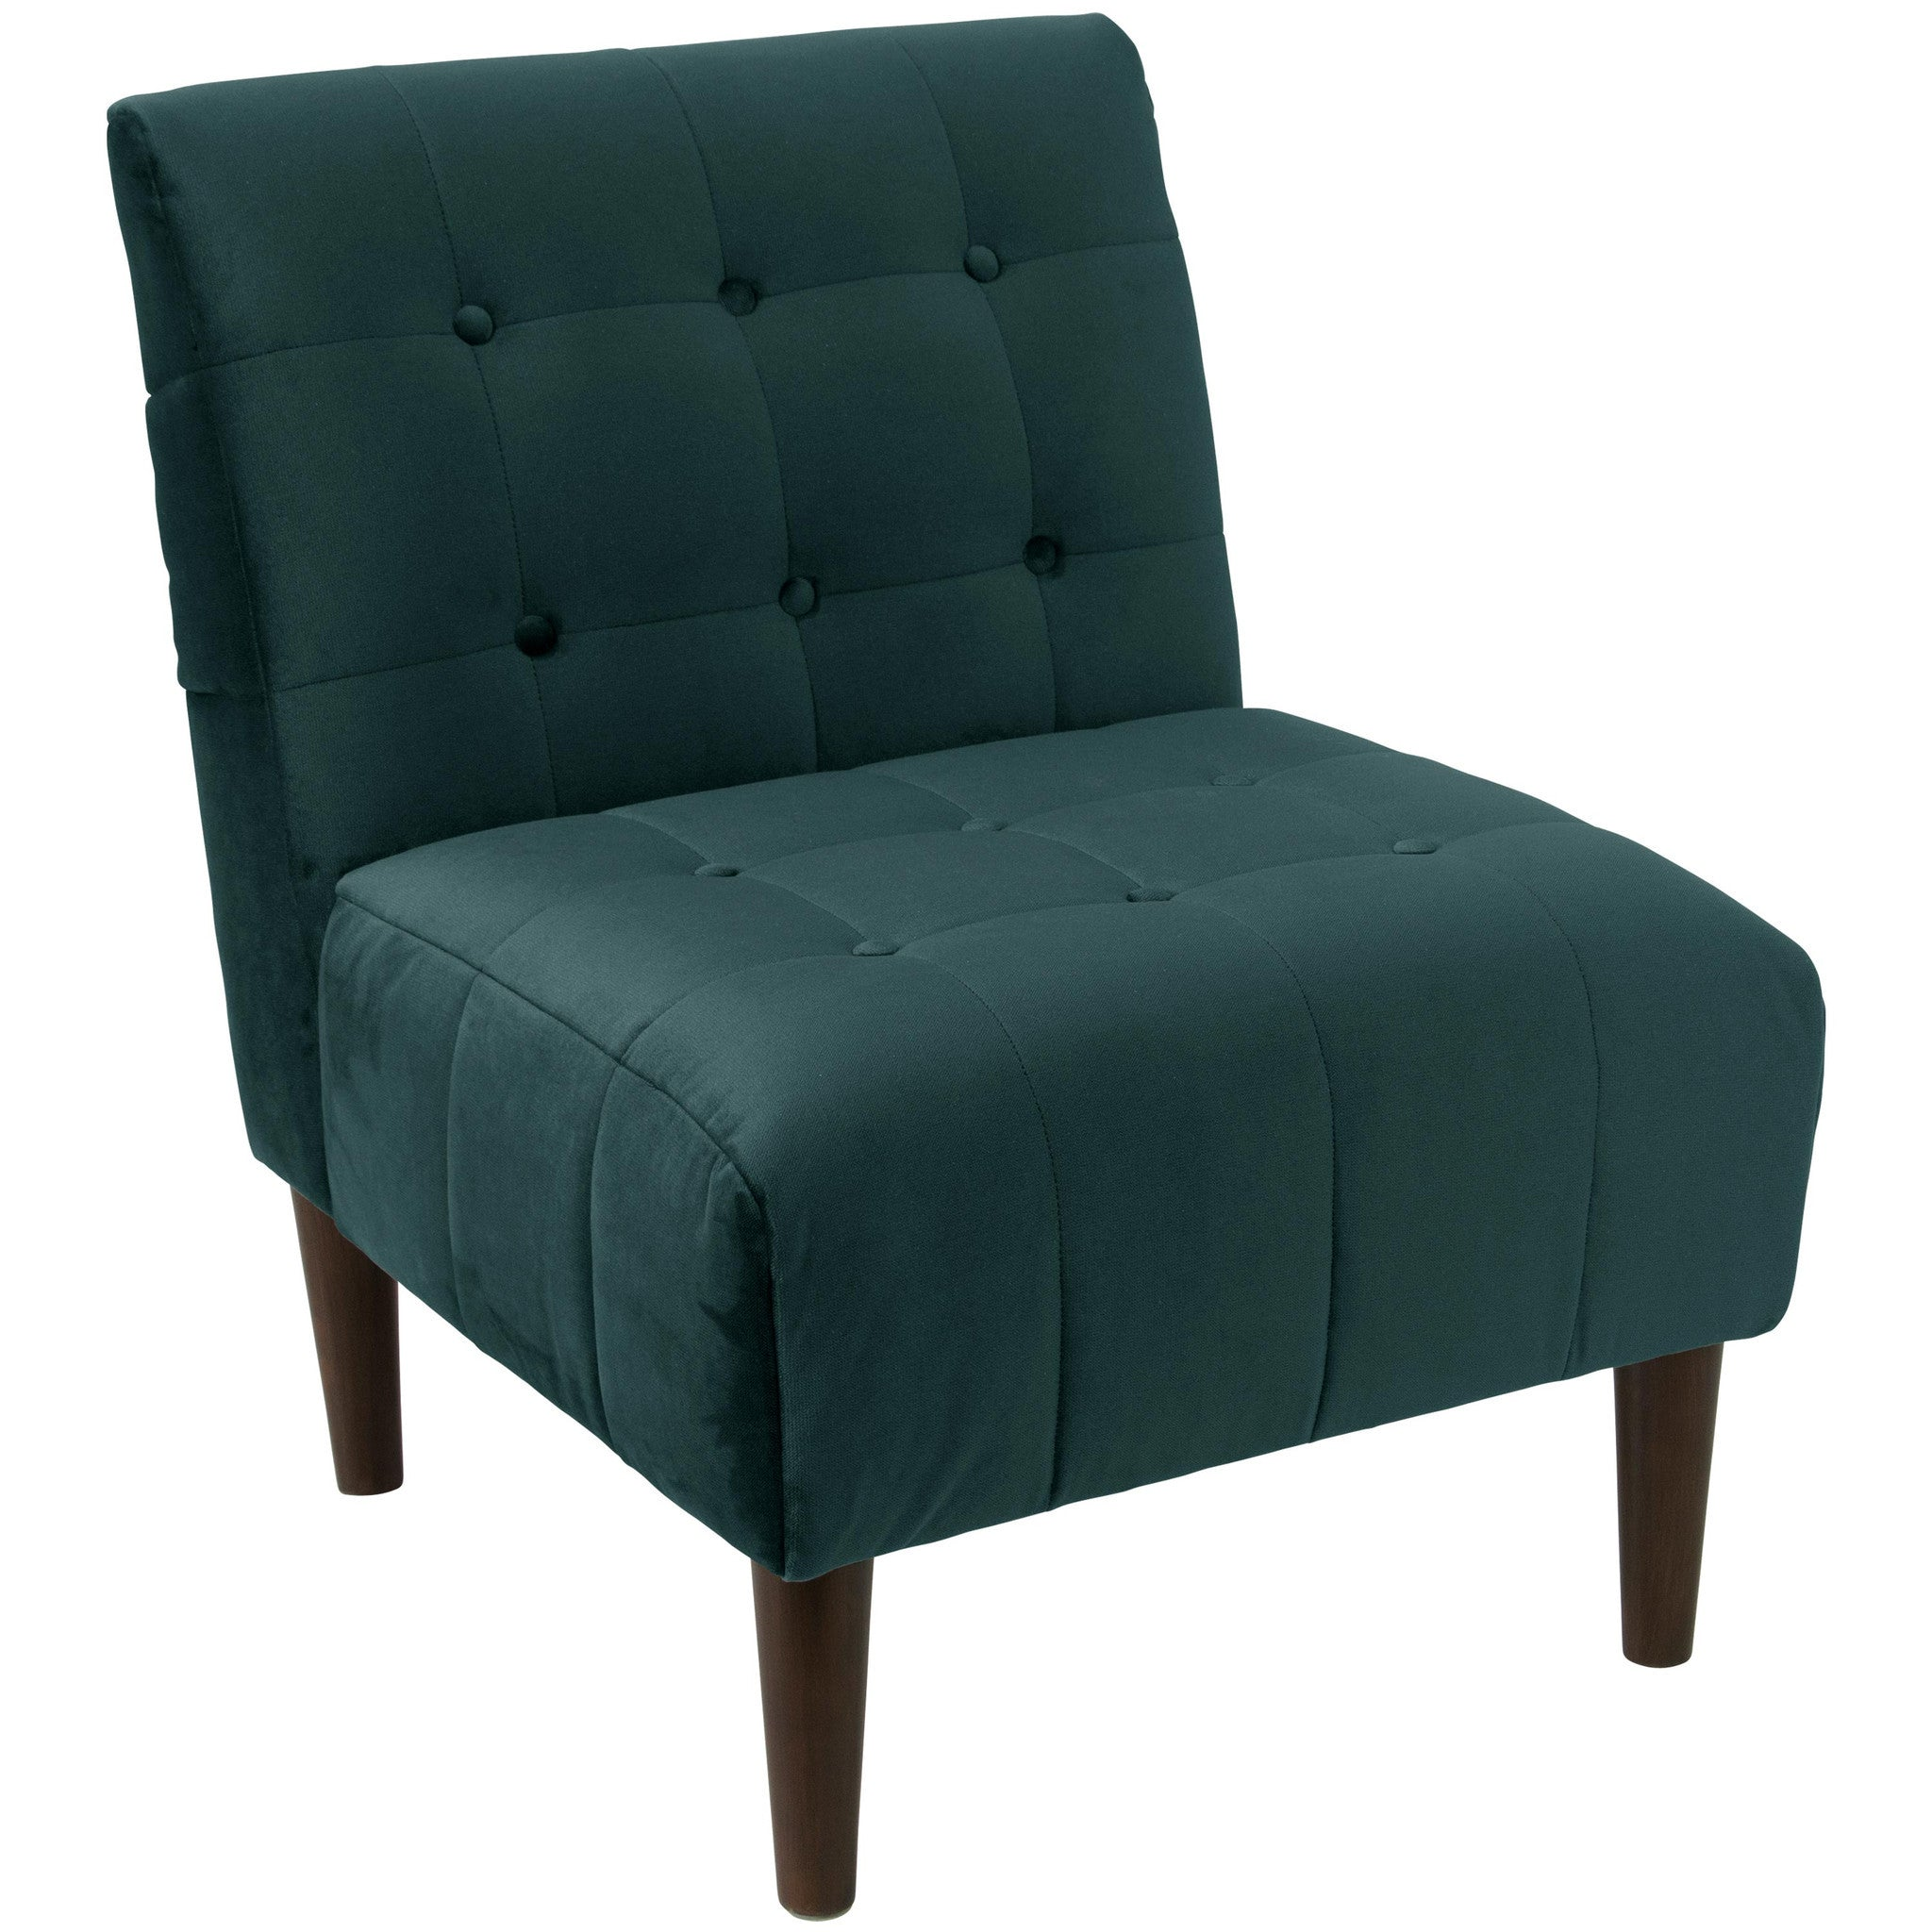 angelo HOME Button Tufted Accent Chair in Mystere Peacock Velvet